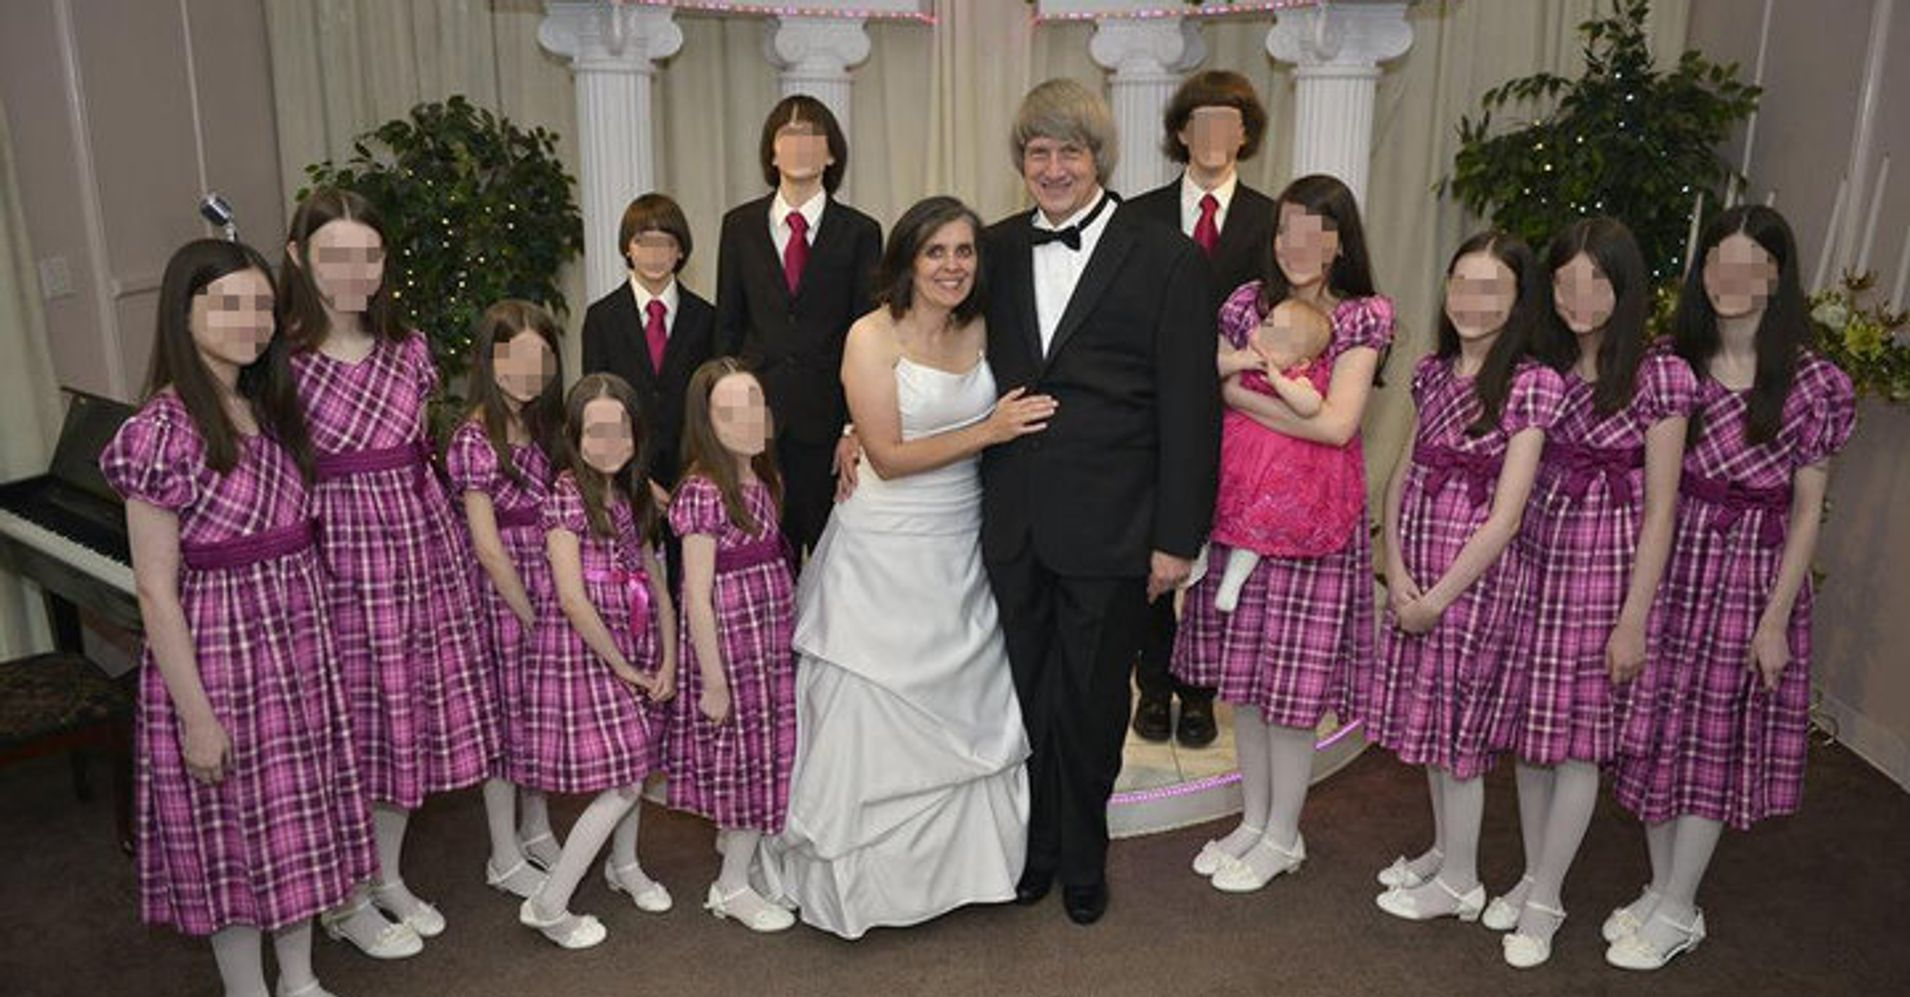 David and Louise Turpin projected an image of a pictureperfect family on social media but their 13 children were being held captive in their home